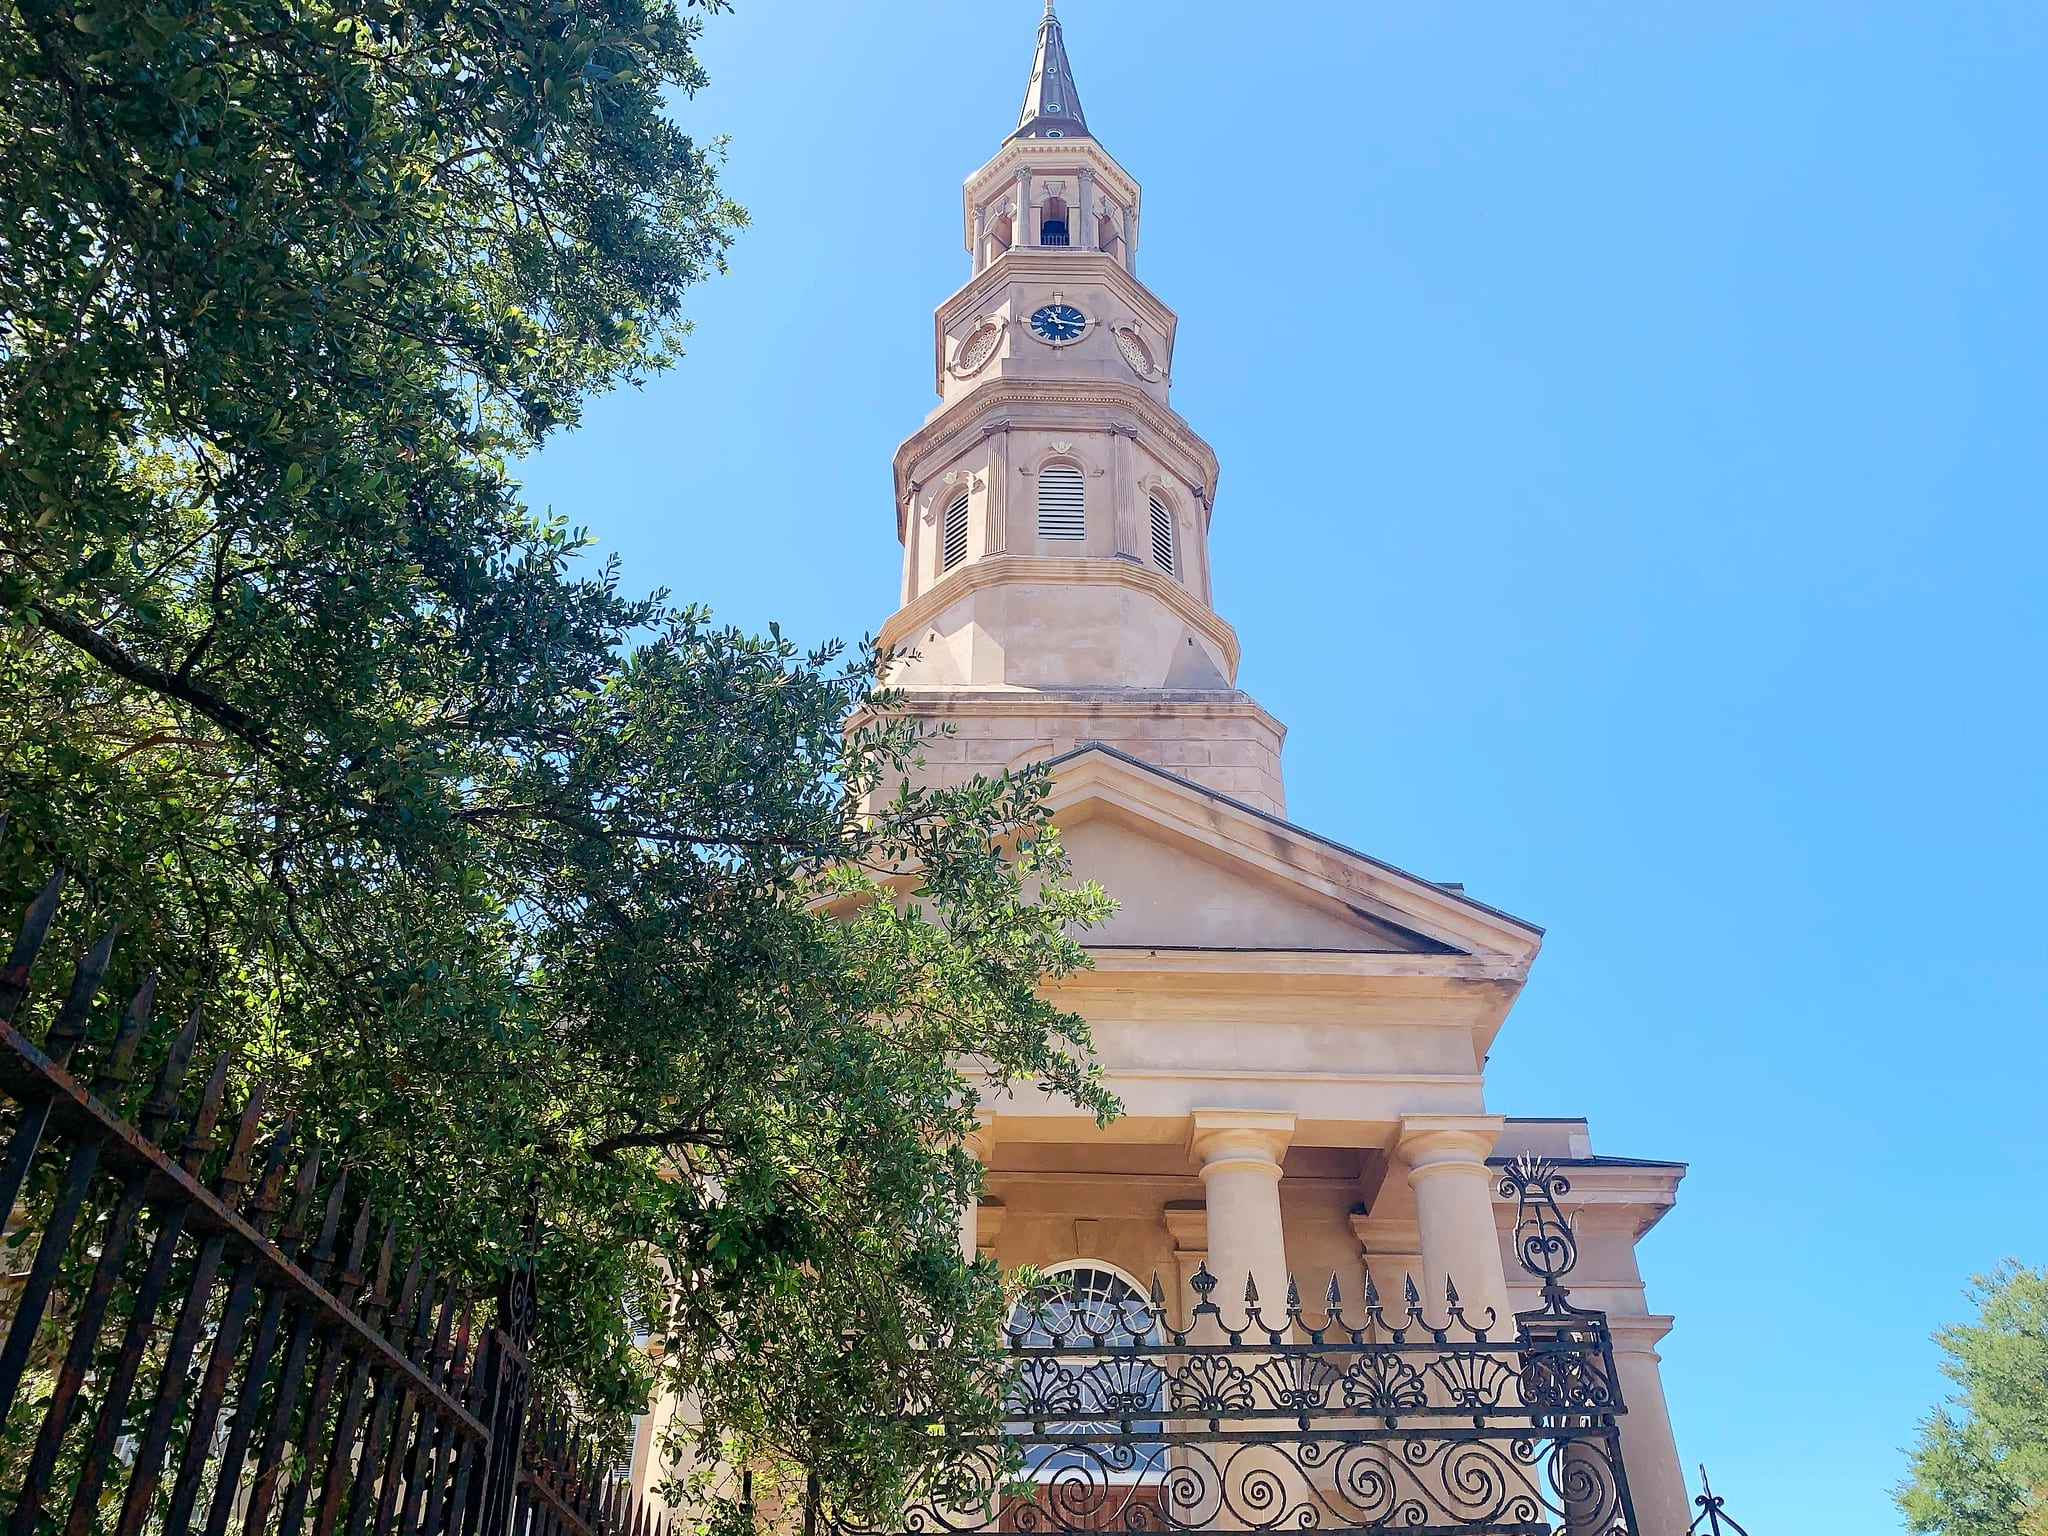 ETW #70 Travel to Beautiful Charleston, South Carolina - landlopers